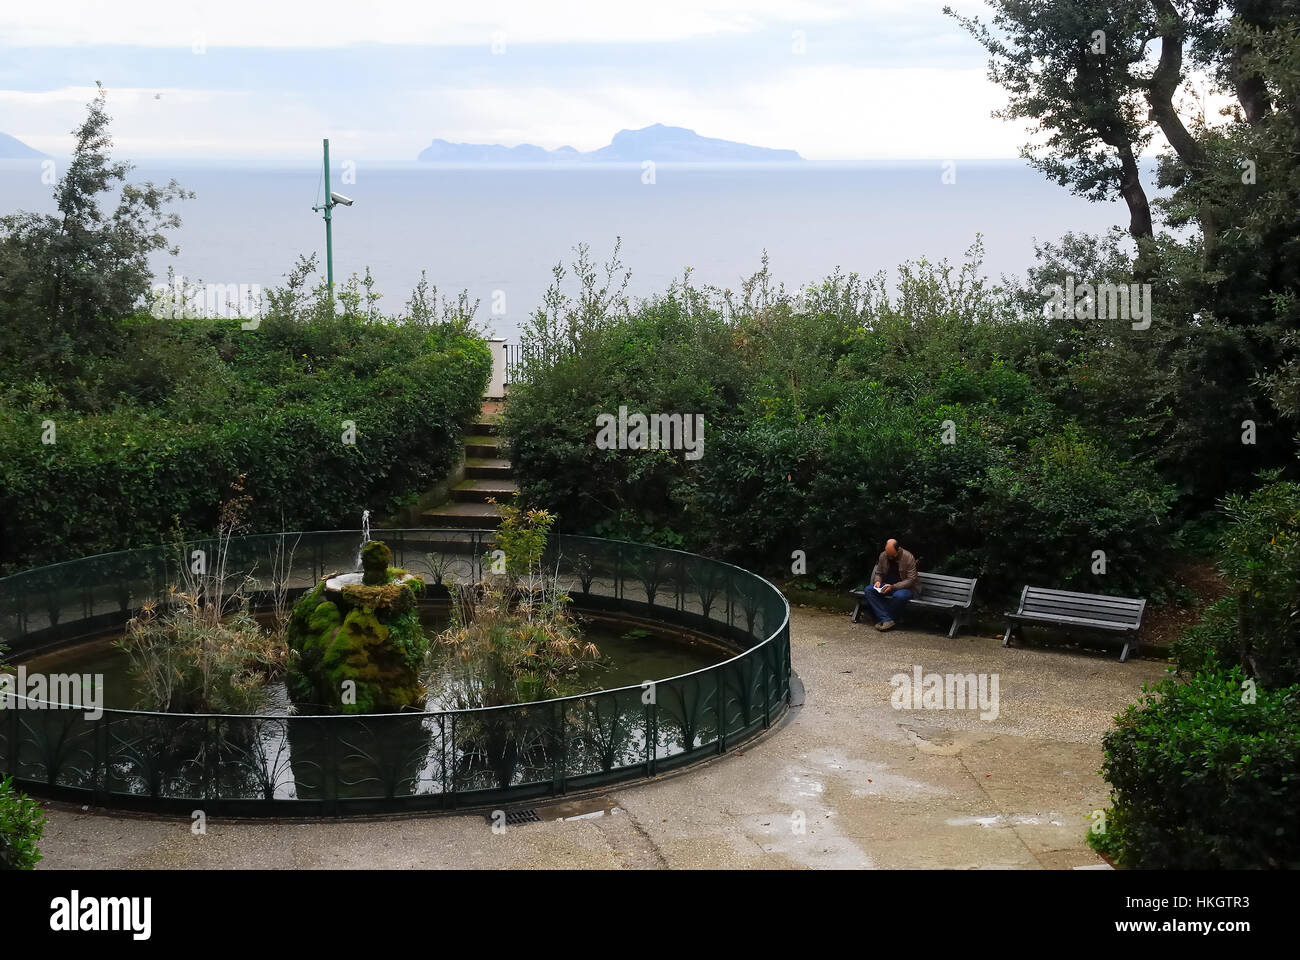 Naples, Campania, Italy. The Villa Floridiana is a large park in the Vomero quarter. The gardens rear of the villa - Stock Image